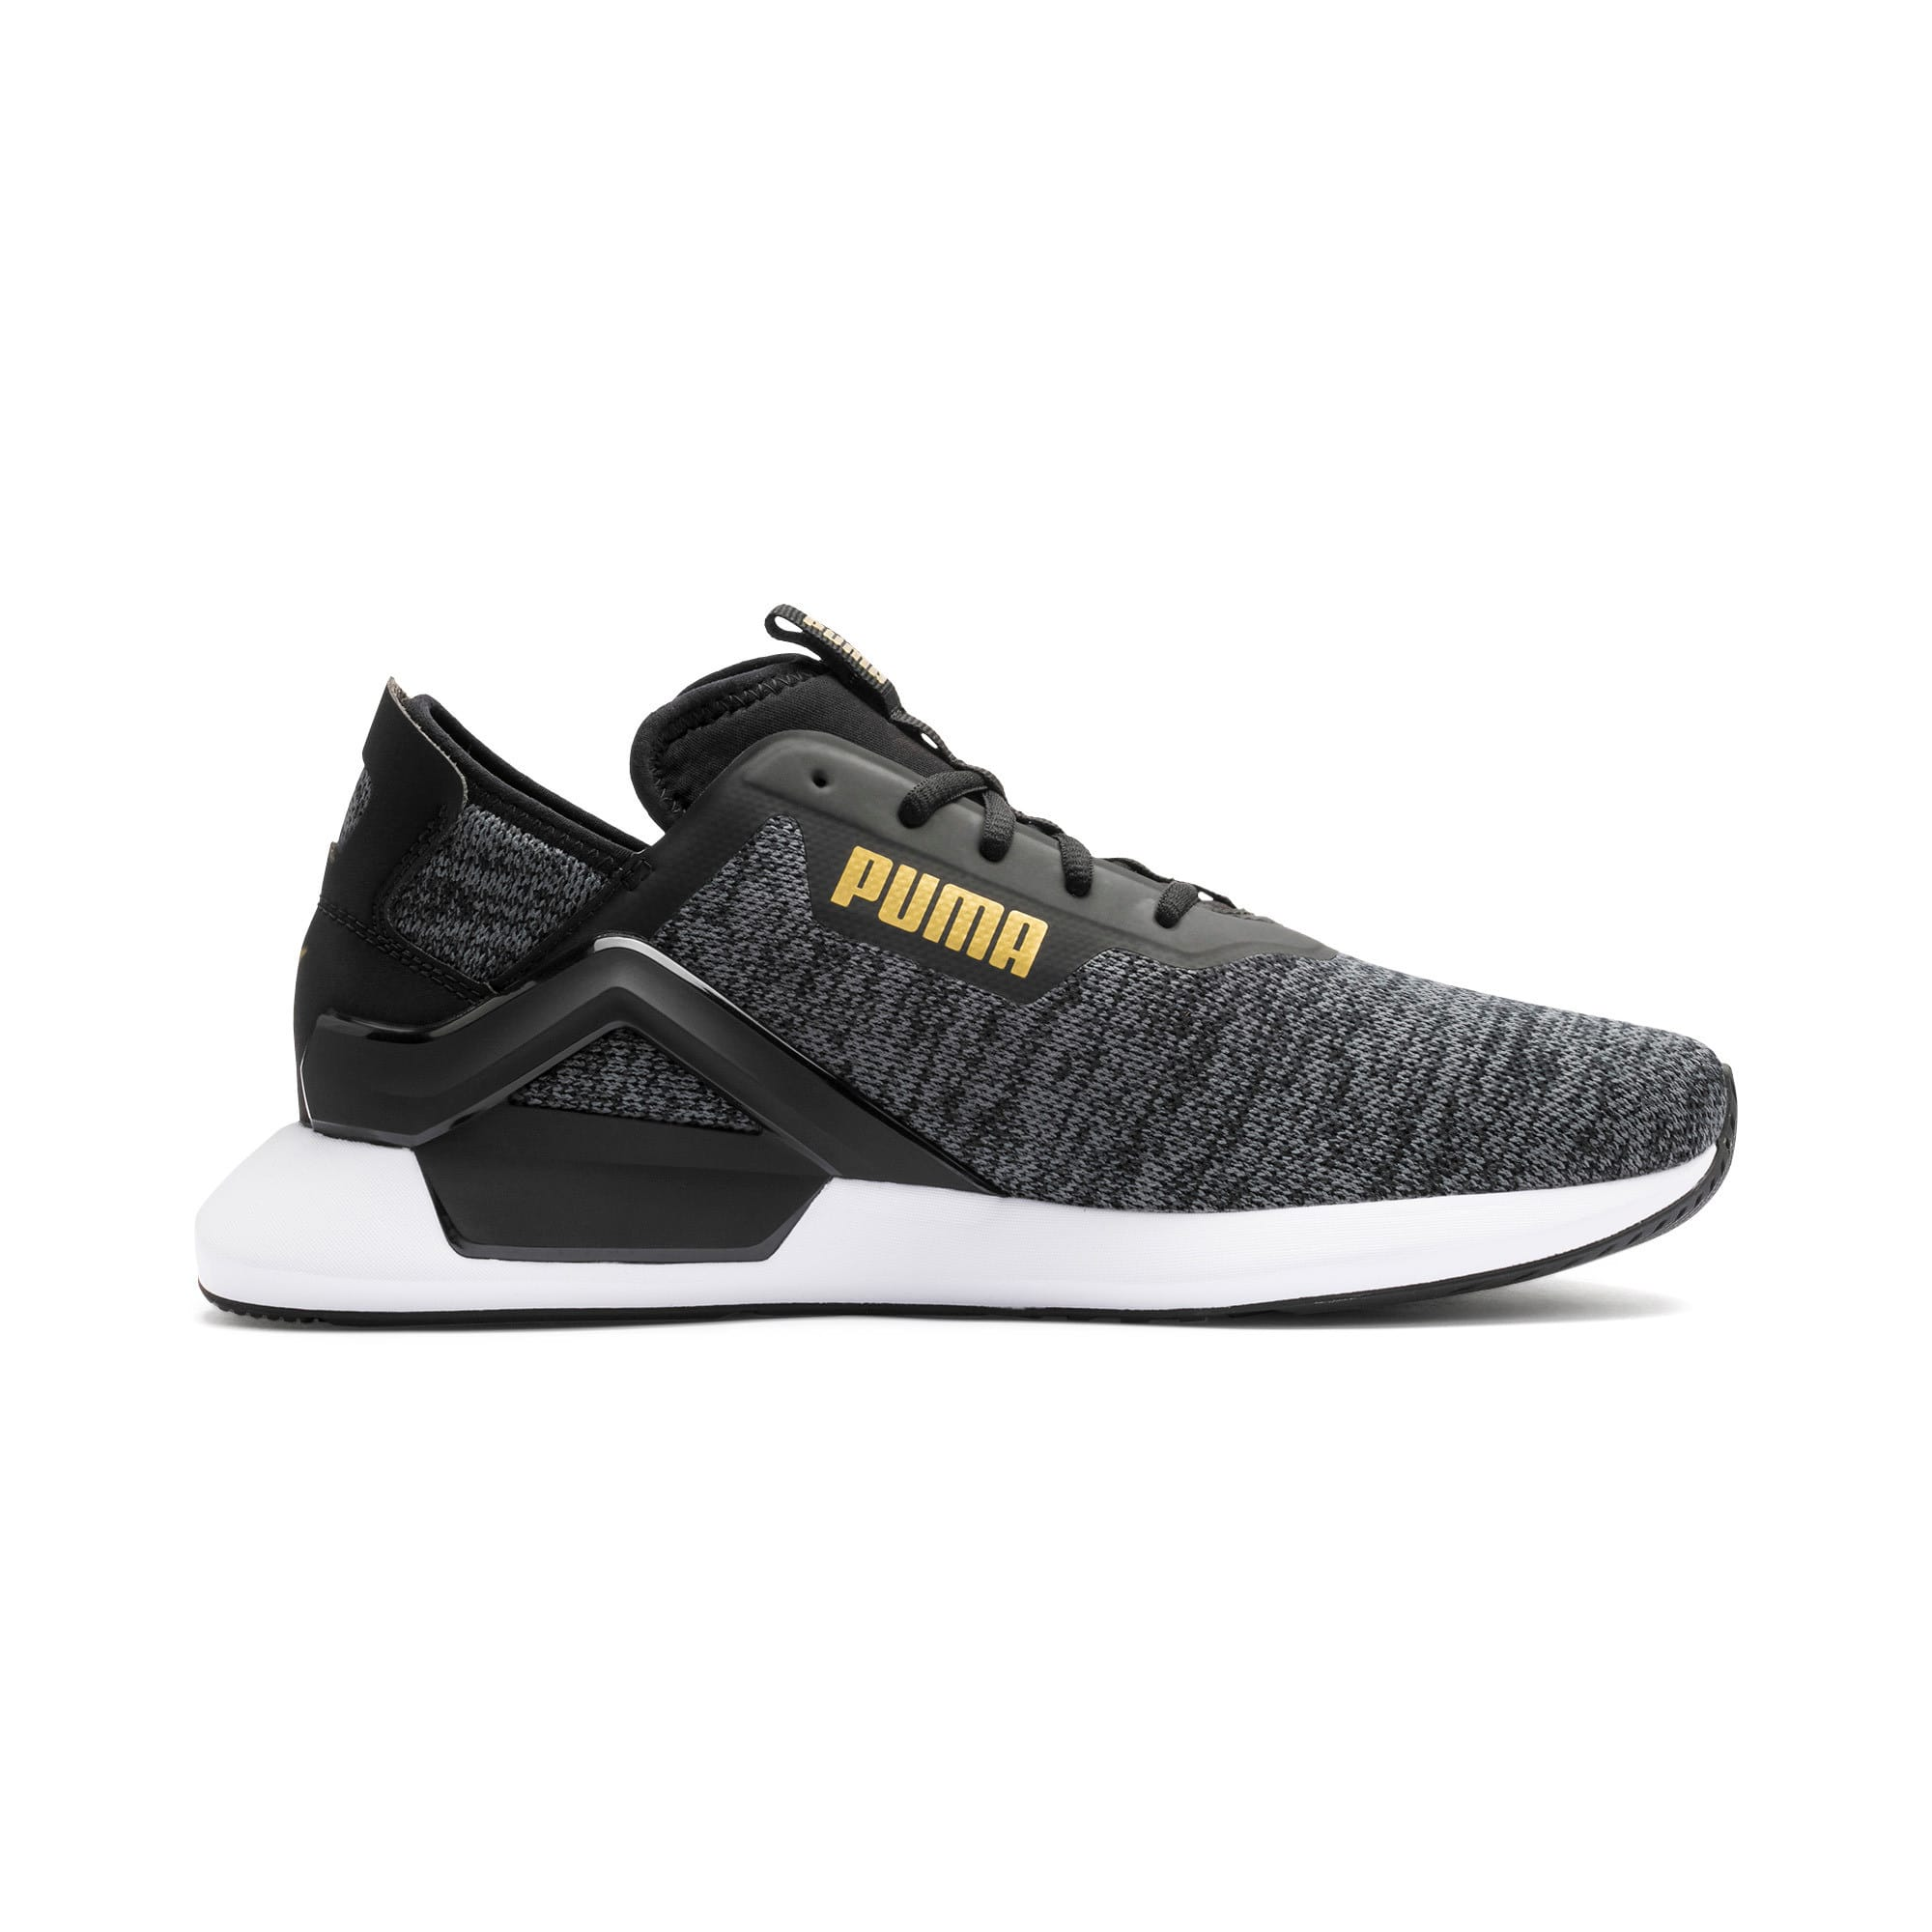 Thumbnail 6 of Rogue X Knit Men's Trainers, Black-CASTLEROCK-Gold, medium